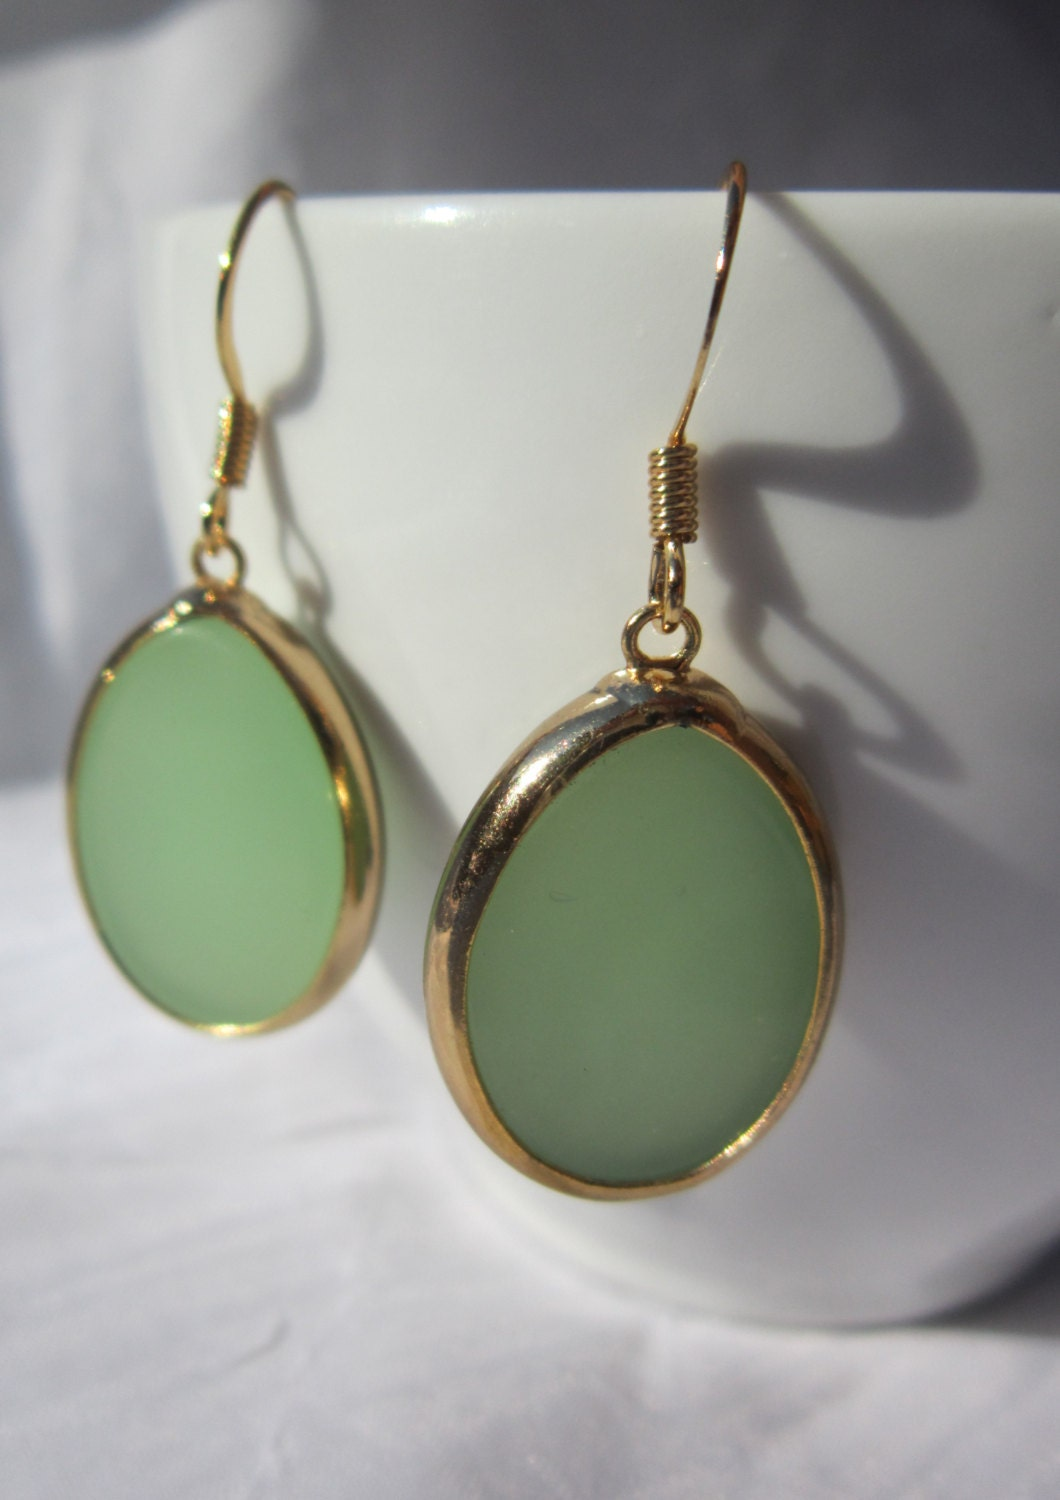 Gold Wrapped Oval Green Calcite Stone Earrings with 14k Gold Filled French Hooks. - ValerinaFelting